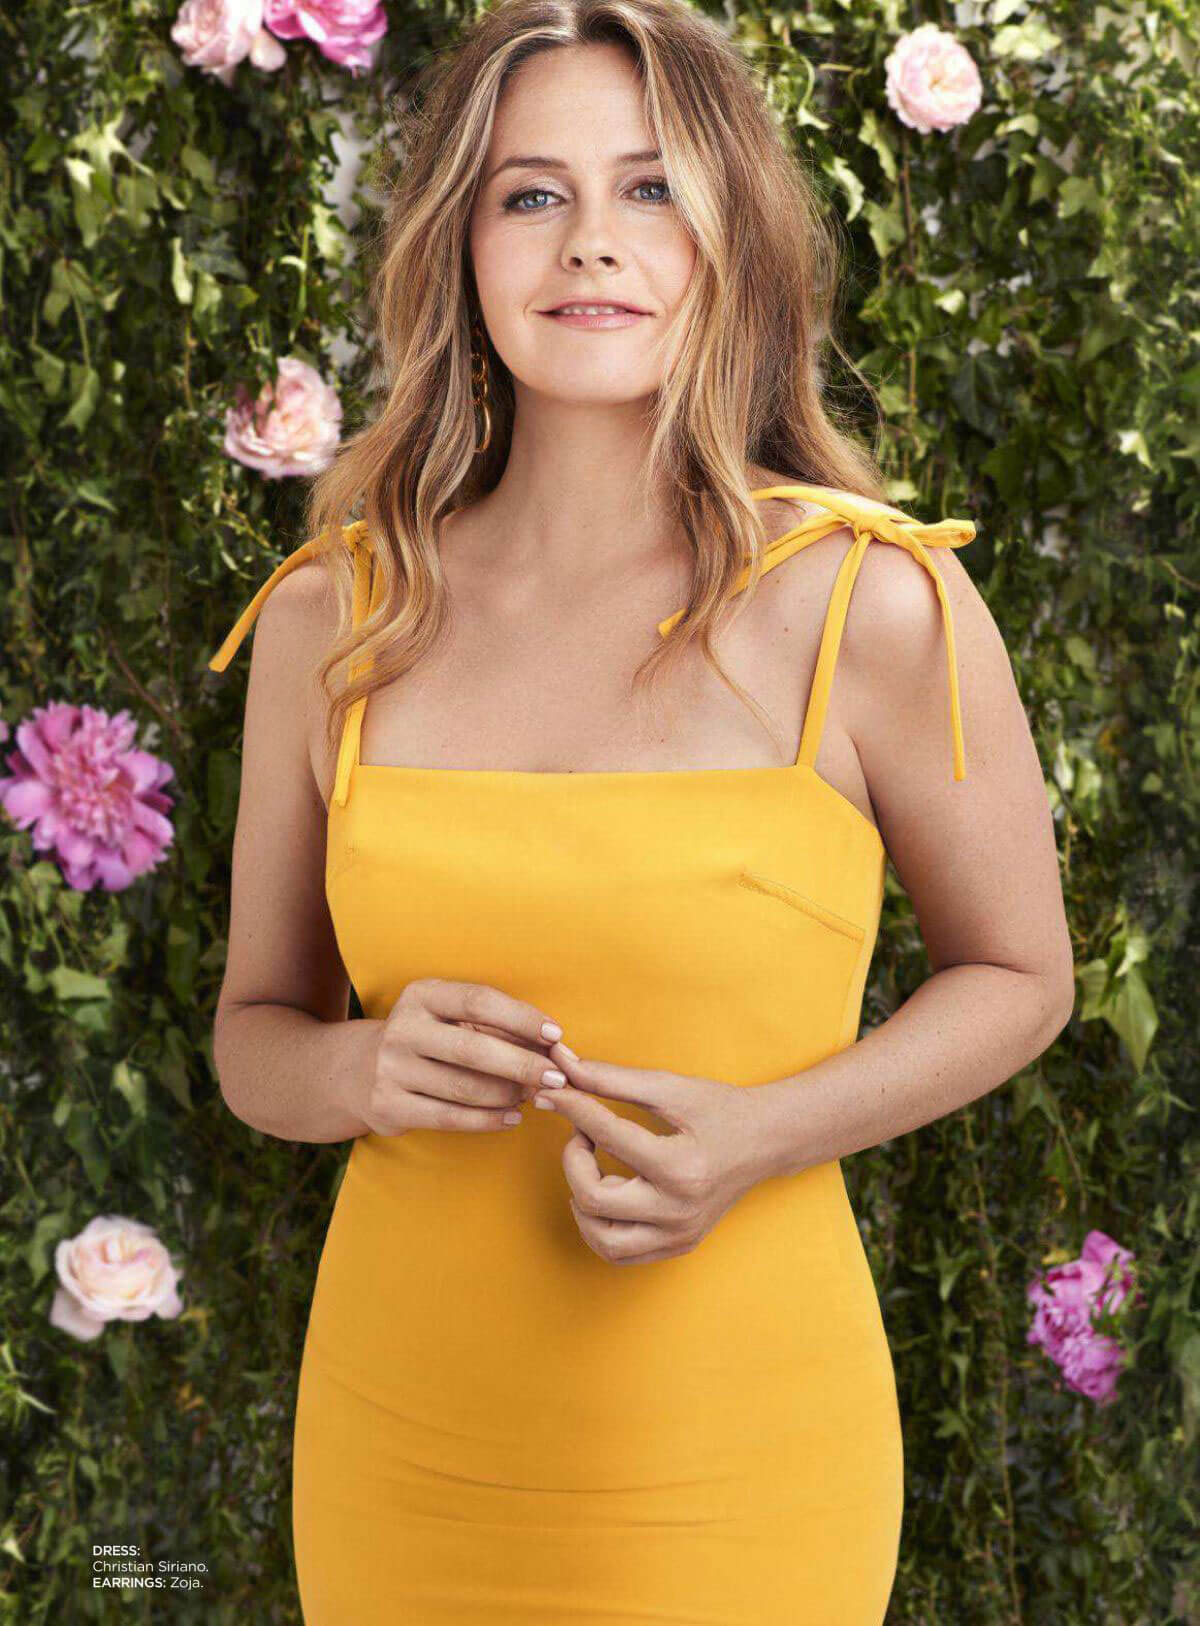 Alicia Silverstone in Redbook Magazine, July/August 2018 Issue 1